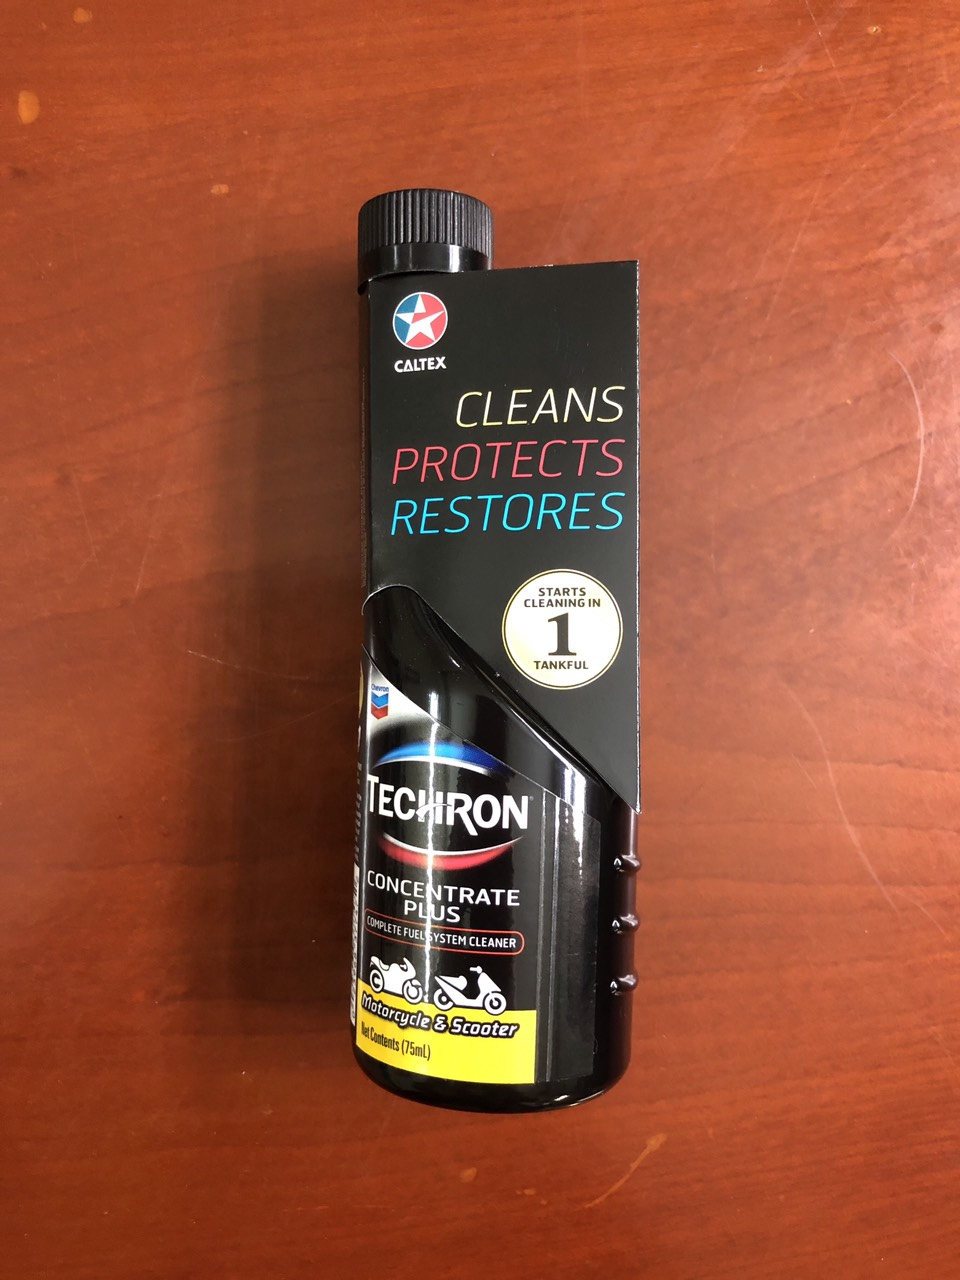 Clean project restores